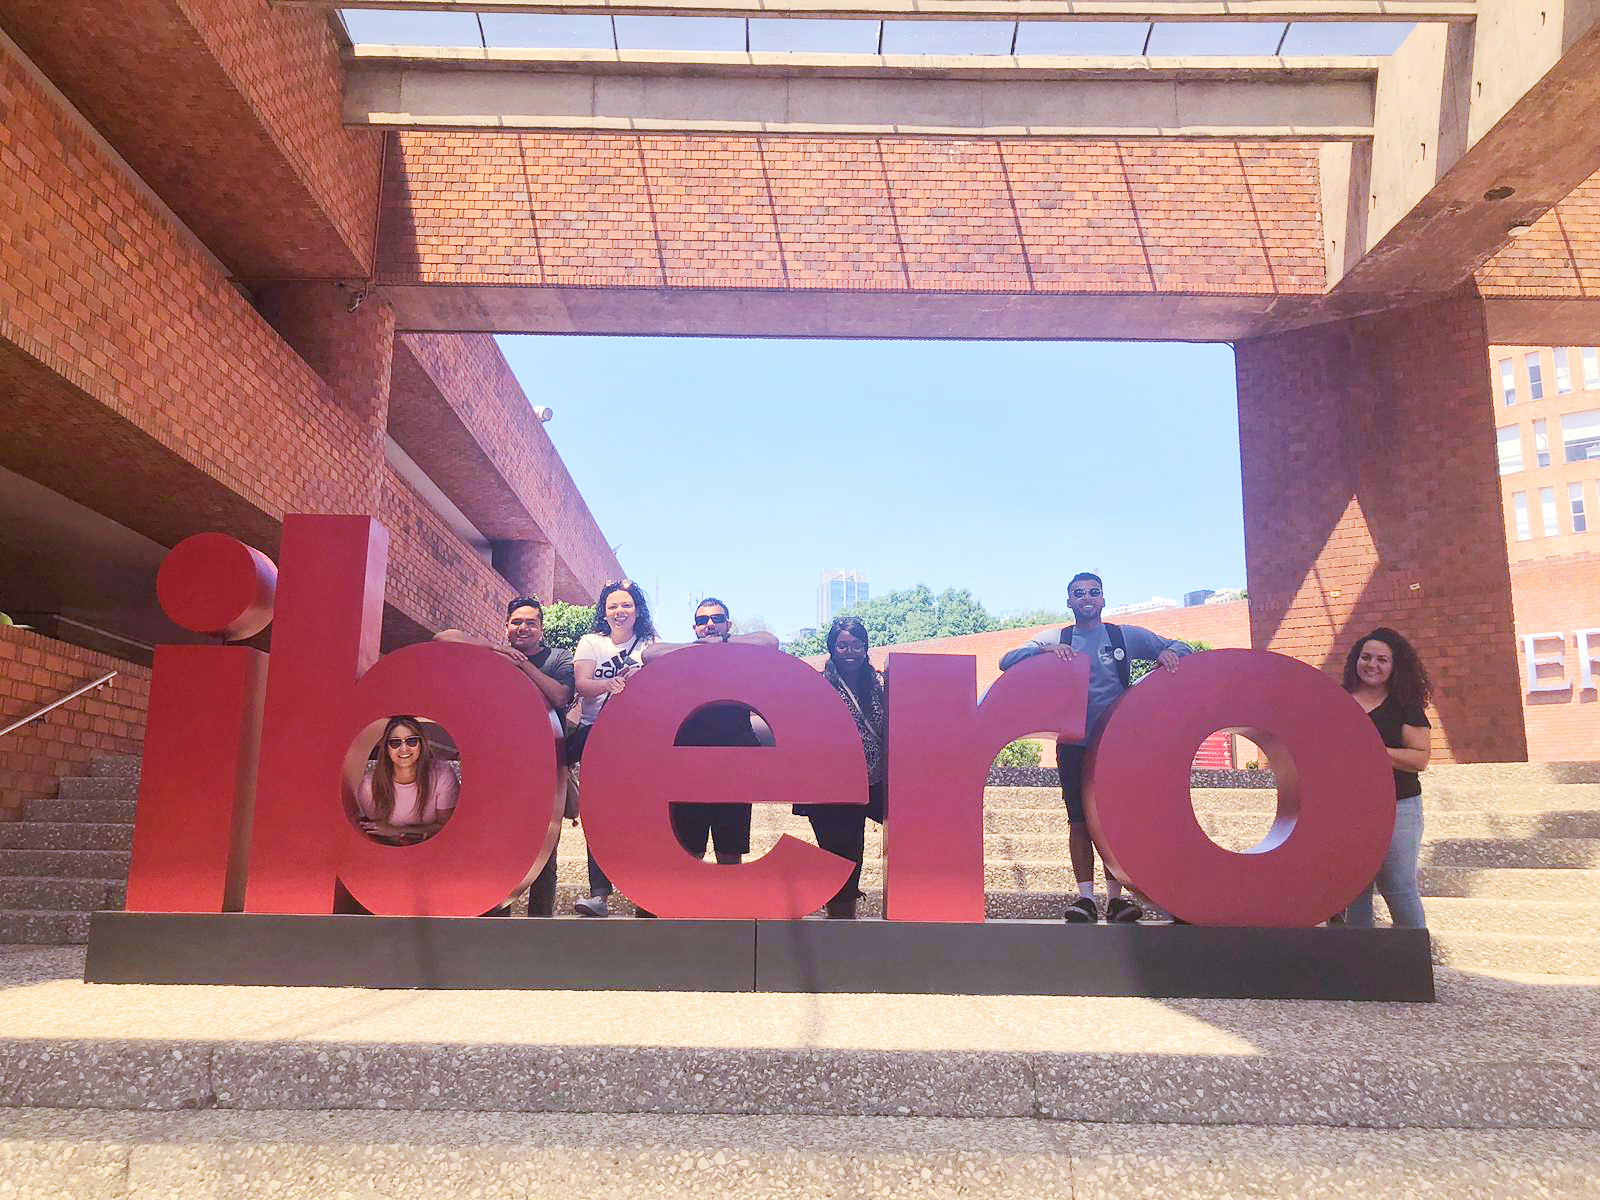 Ibero - Summer Study Abroad Program Takes Multicultural Counseling Students to Mexico City